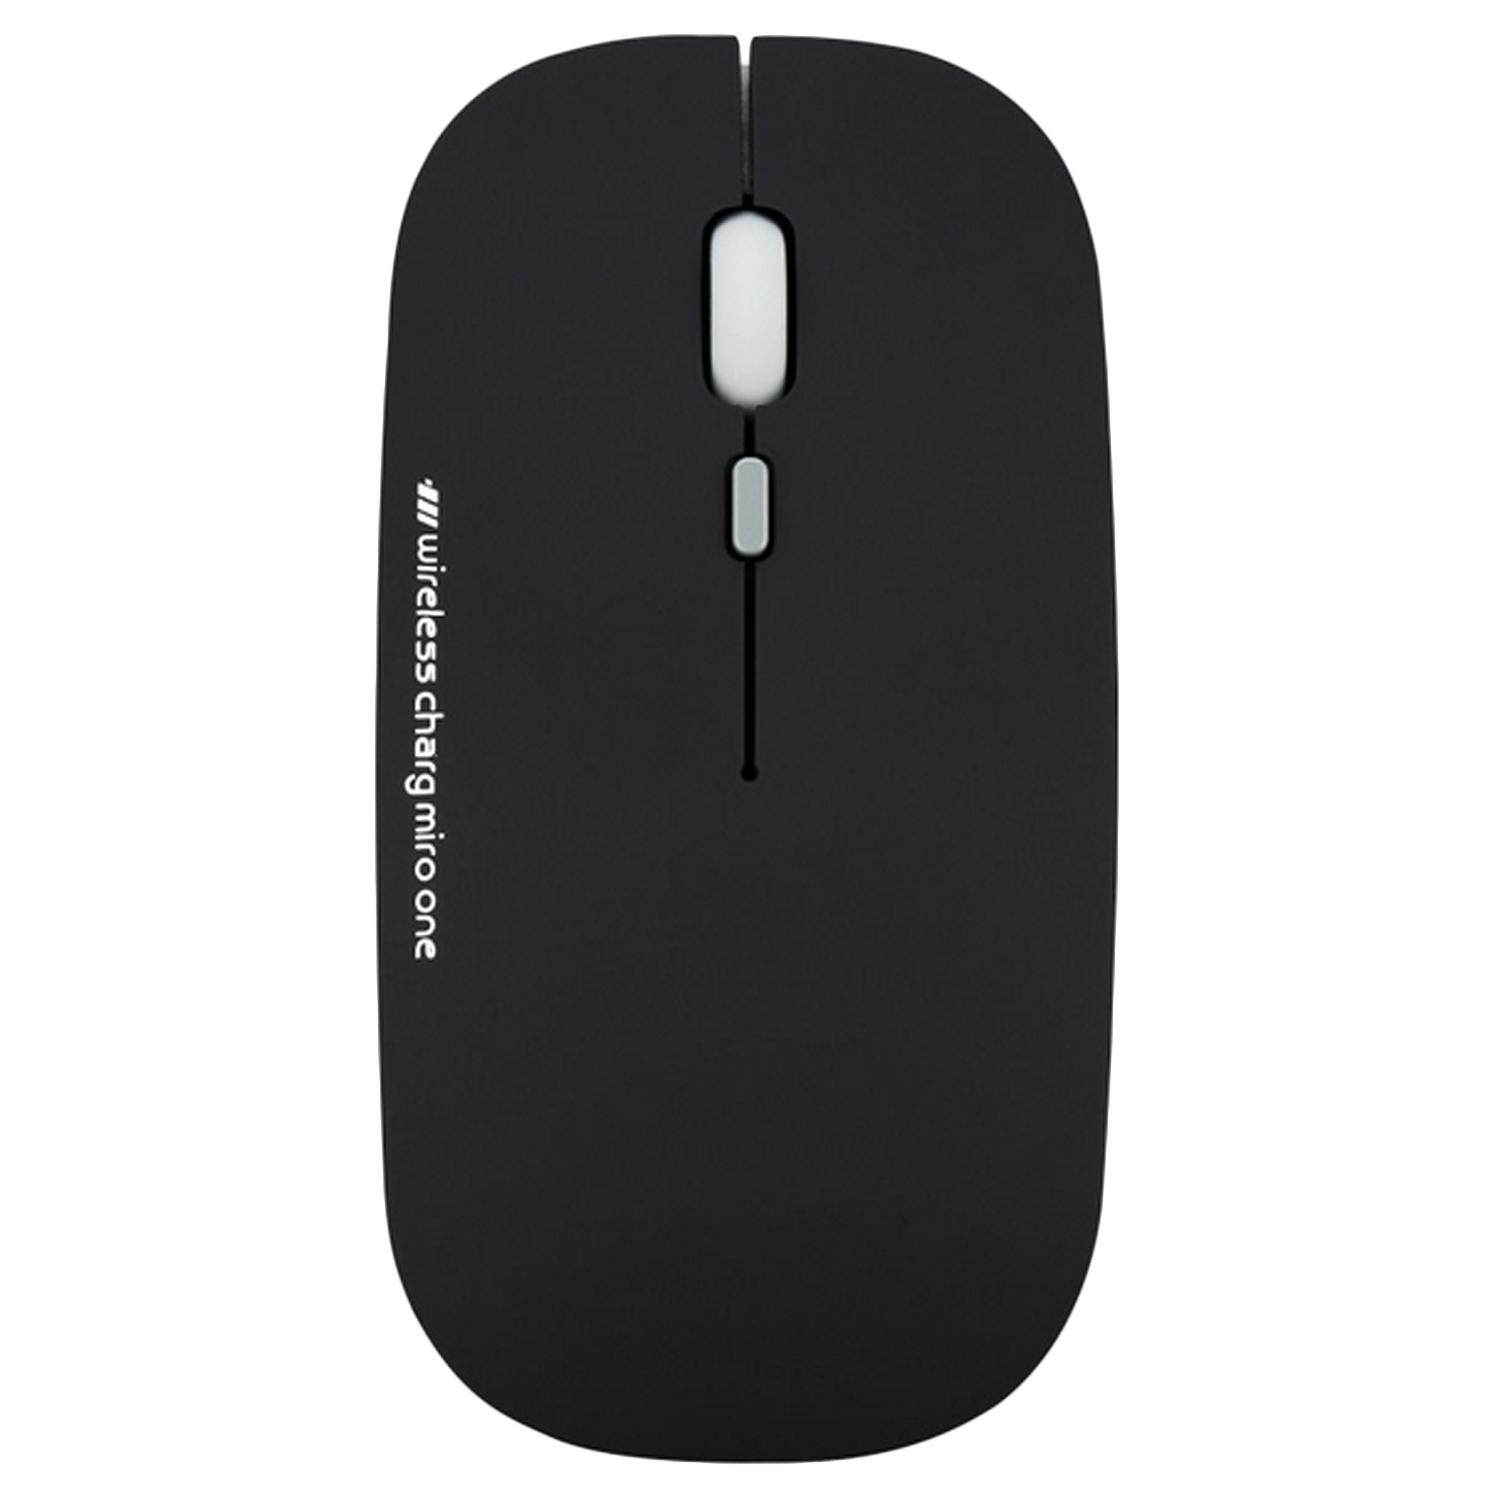 2.4G 2400DPI 3 Buttons Ultra-Thin Silence Rechargeable Wireless Optical Mouse for MacBook Notebook